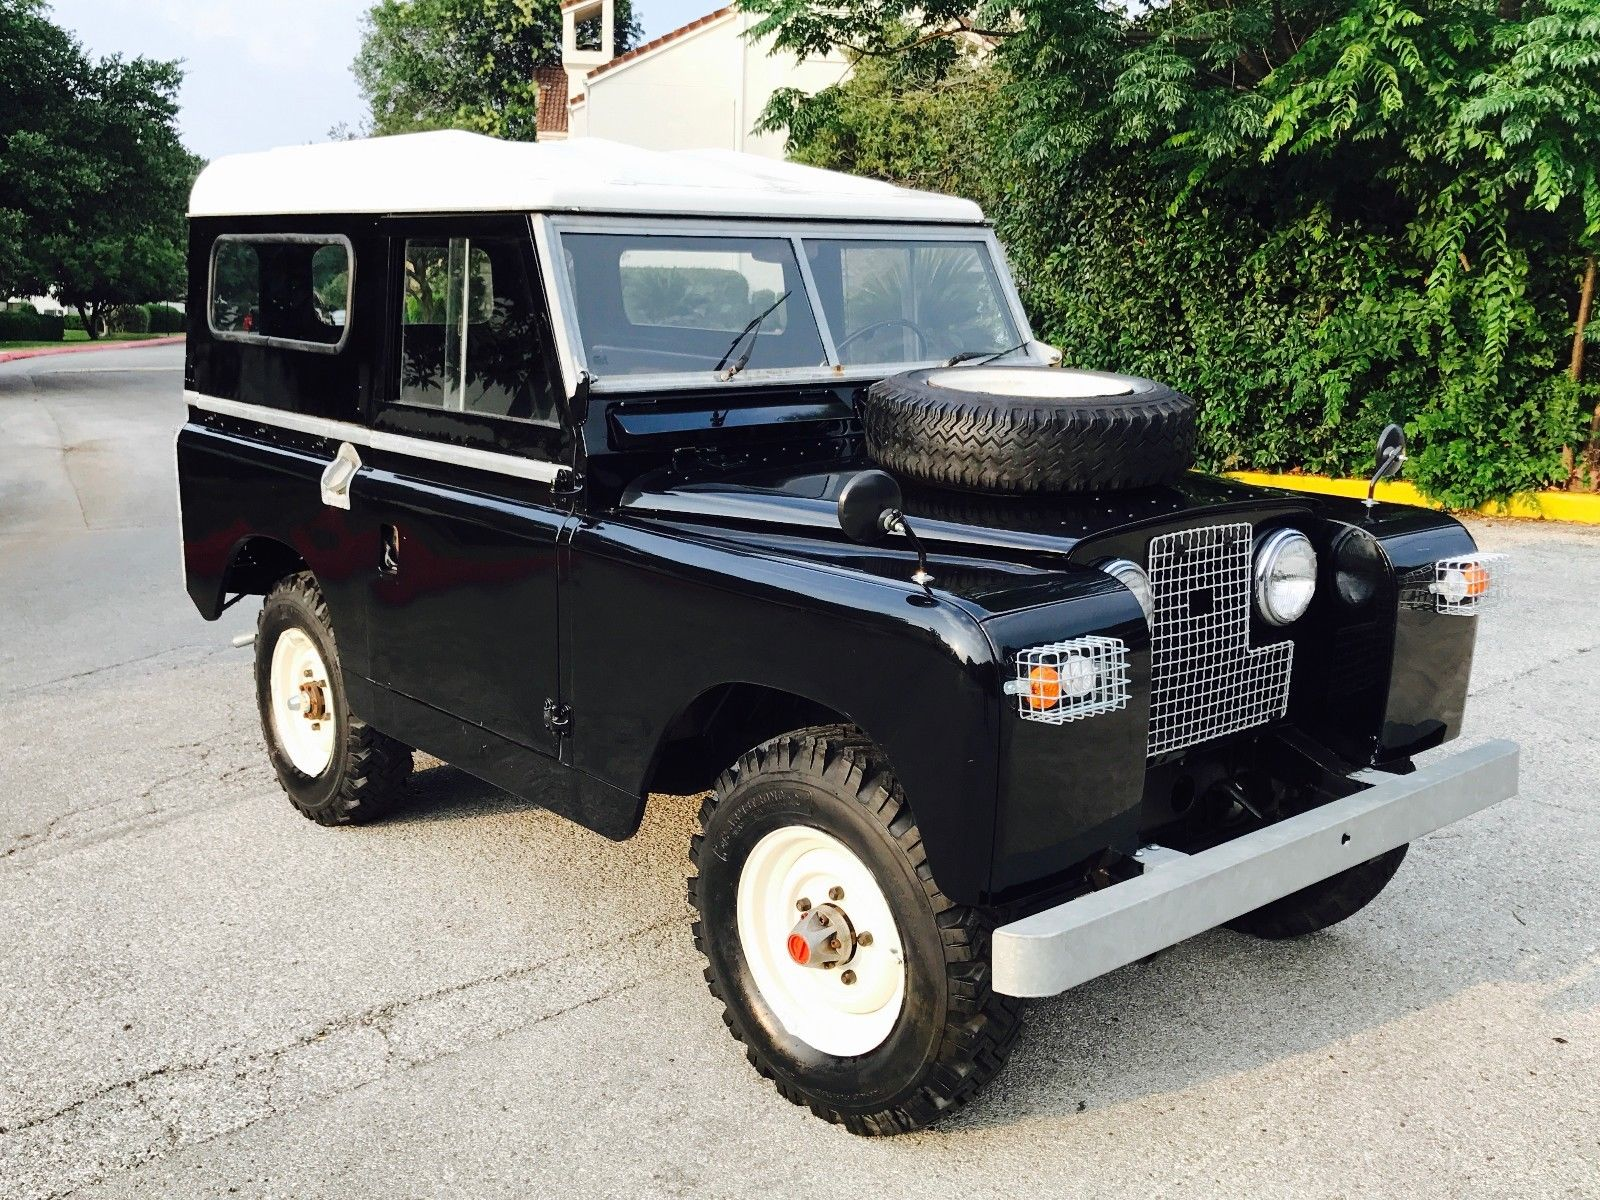 ca land sale rover for saint landrover classic scotti john onard defender cars used in l en